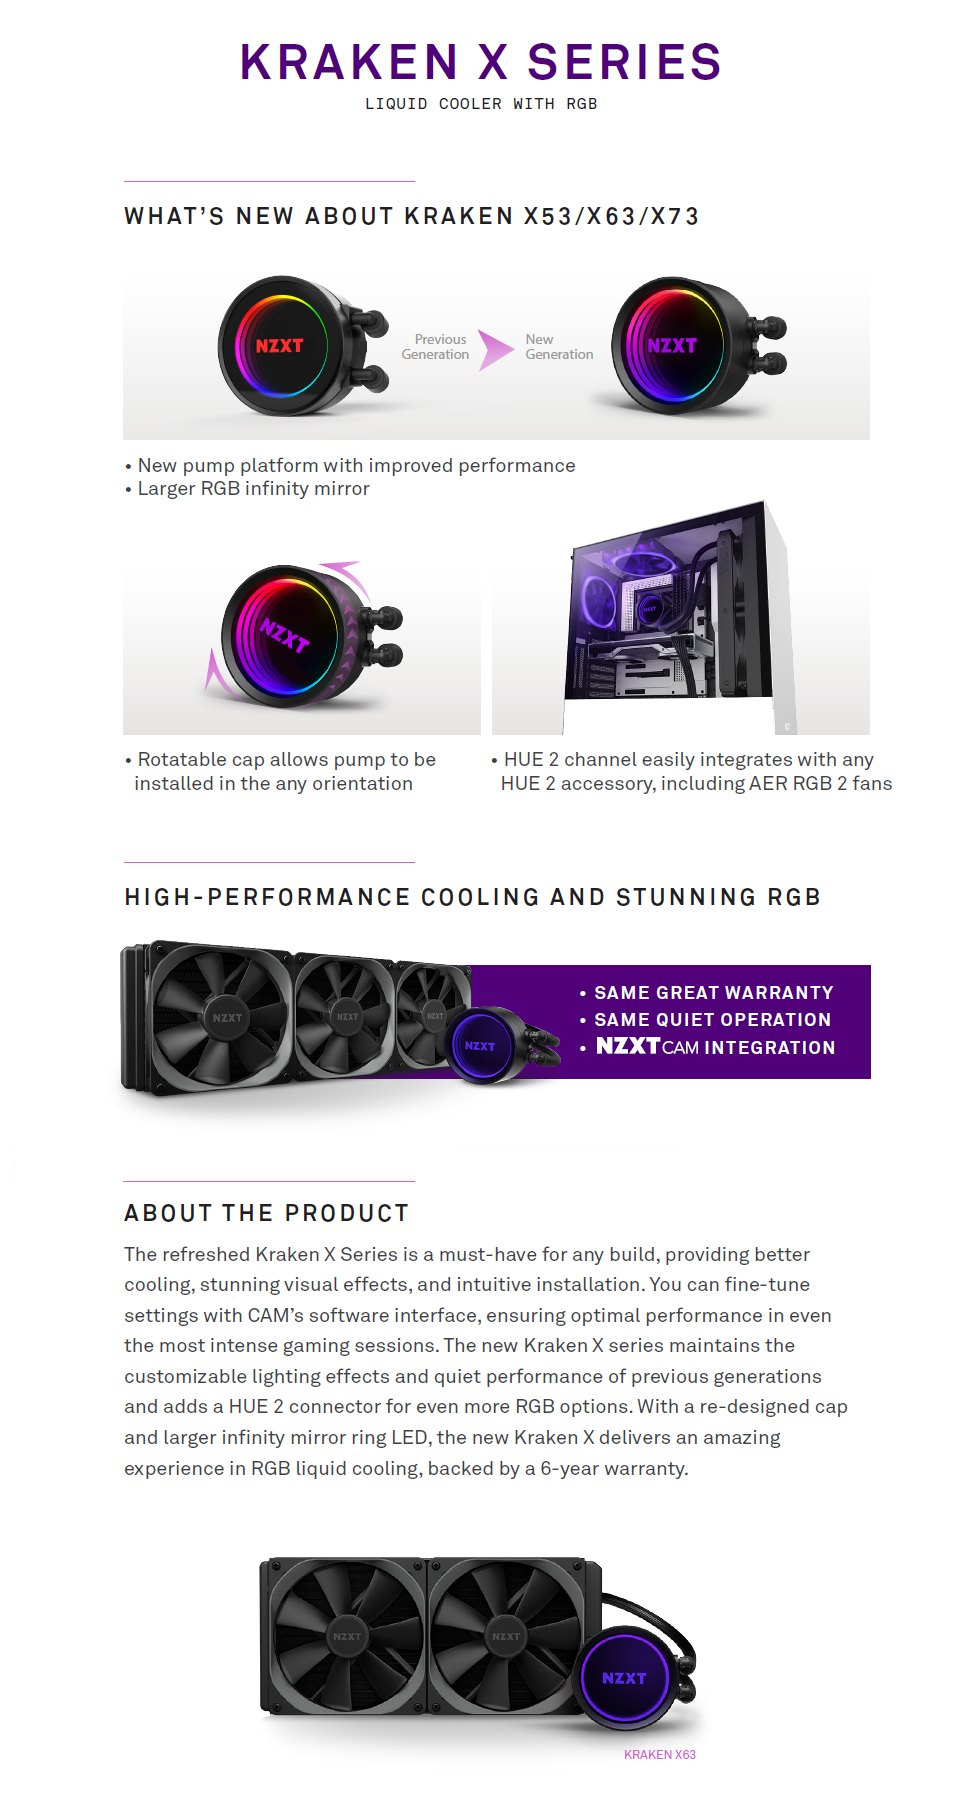 NZXT Kraken X63 280mm AIO Liquid CPU Cooler features